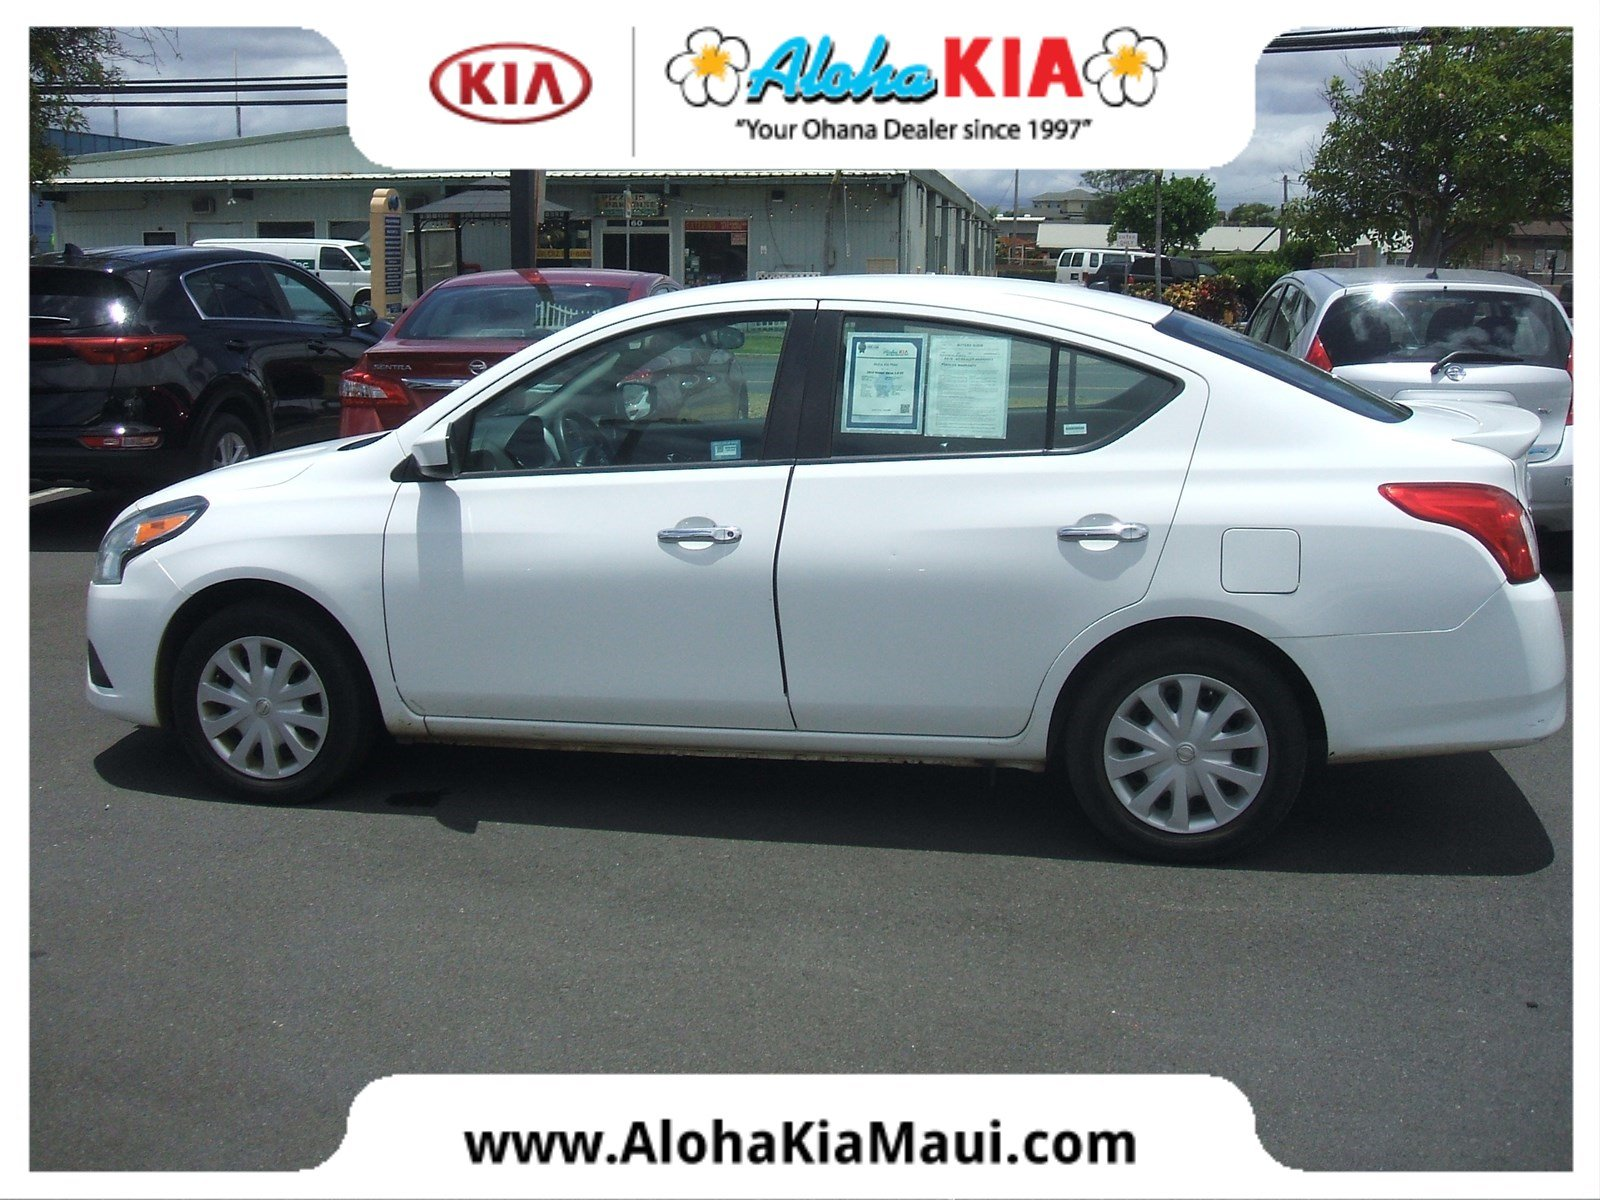 aloha kia maui kahului hi car dealership and auto financing autotrader